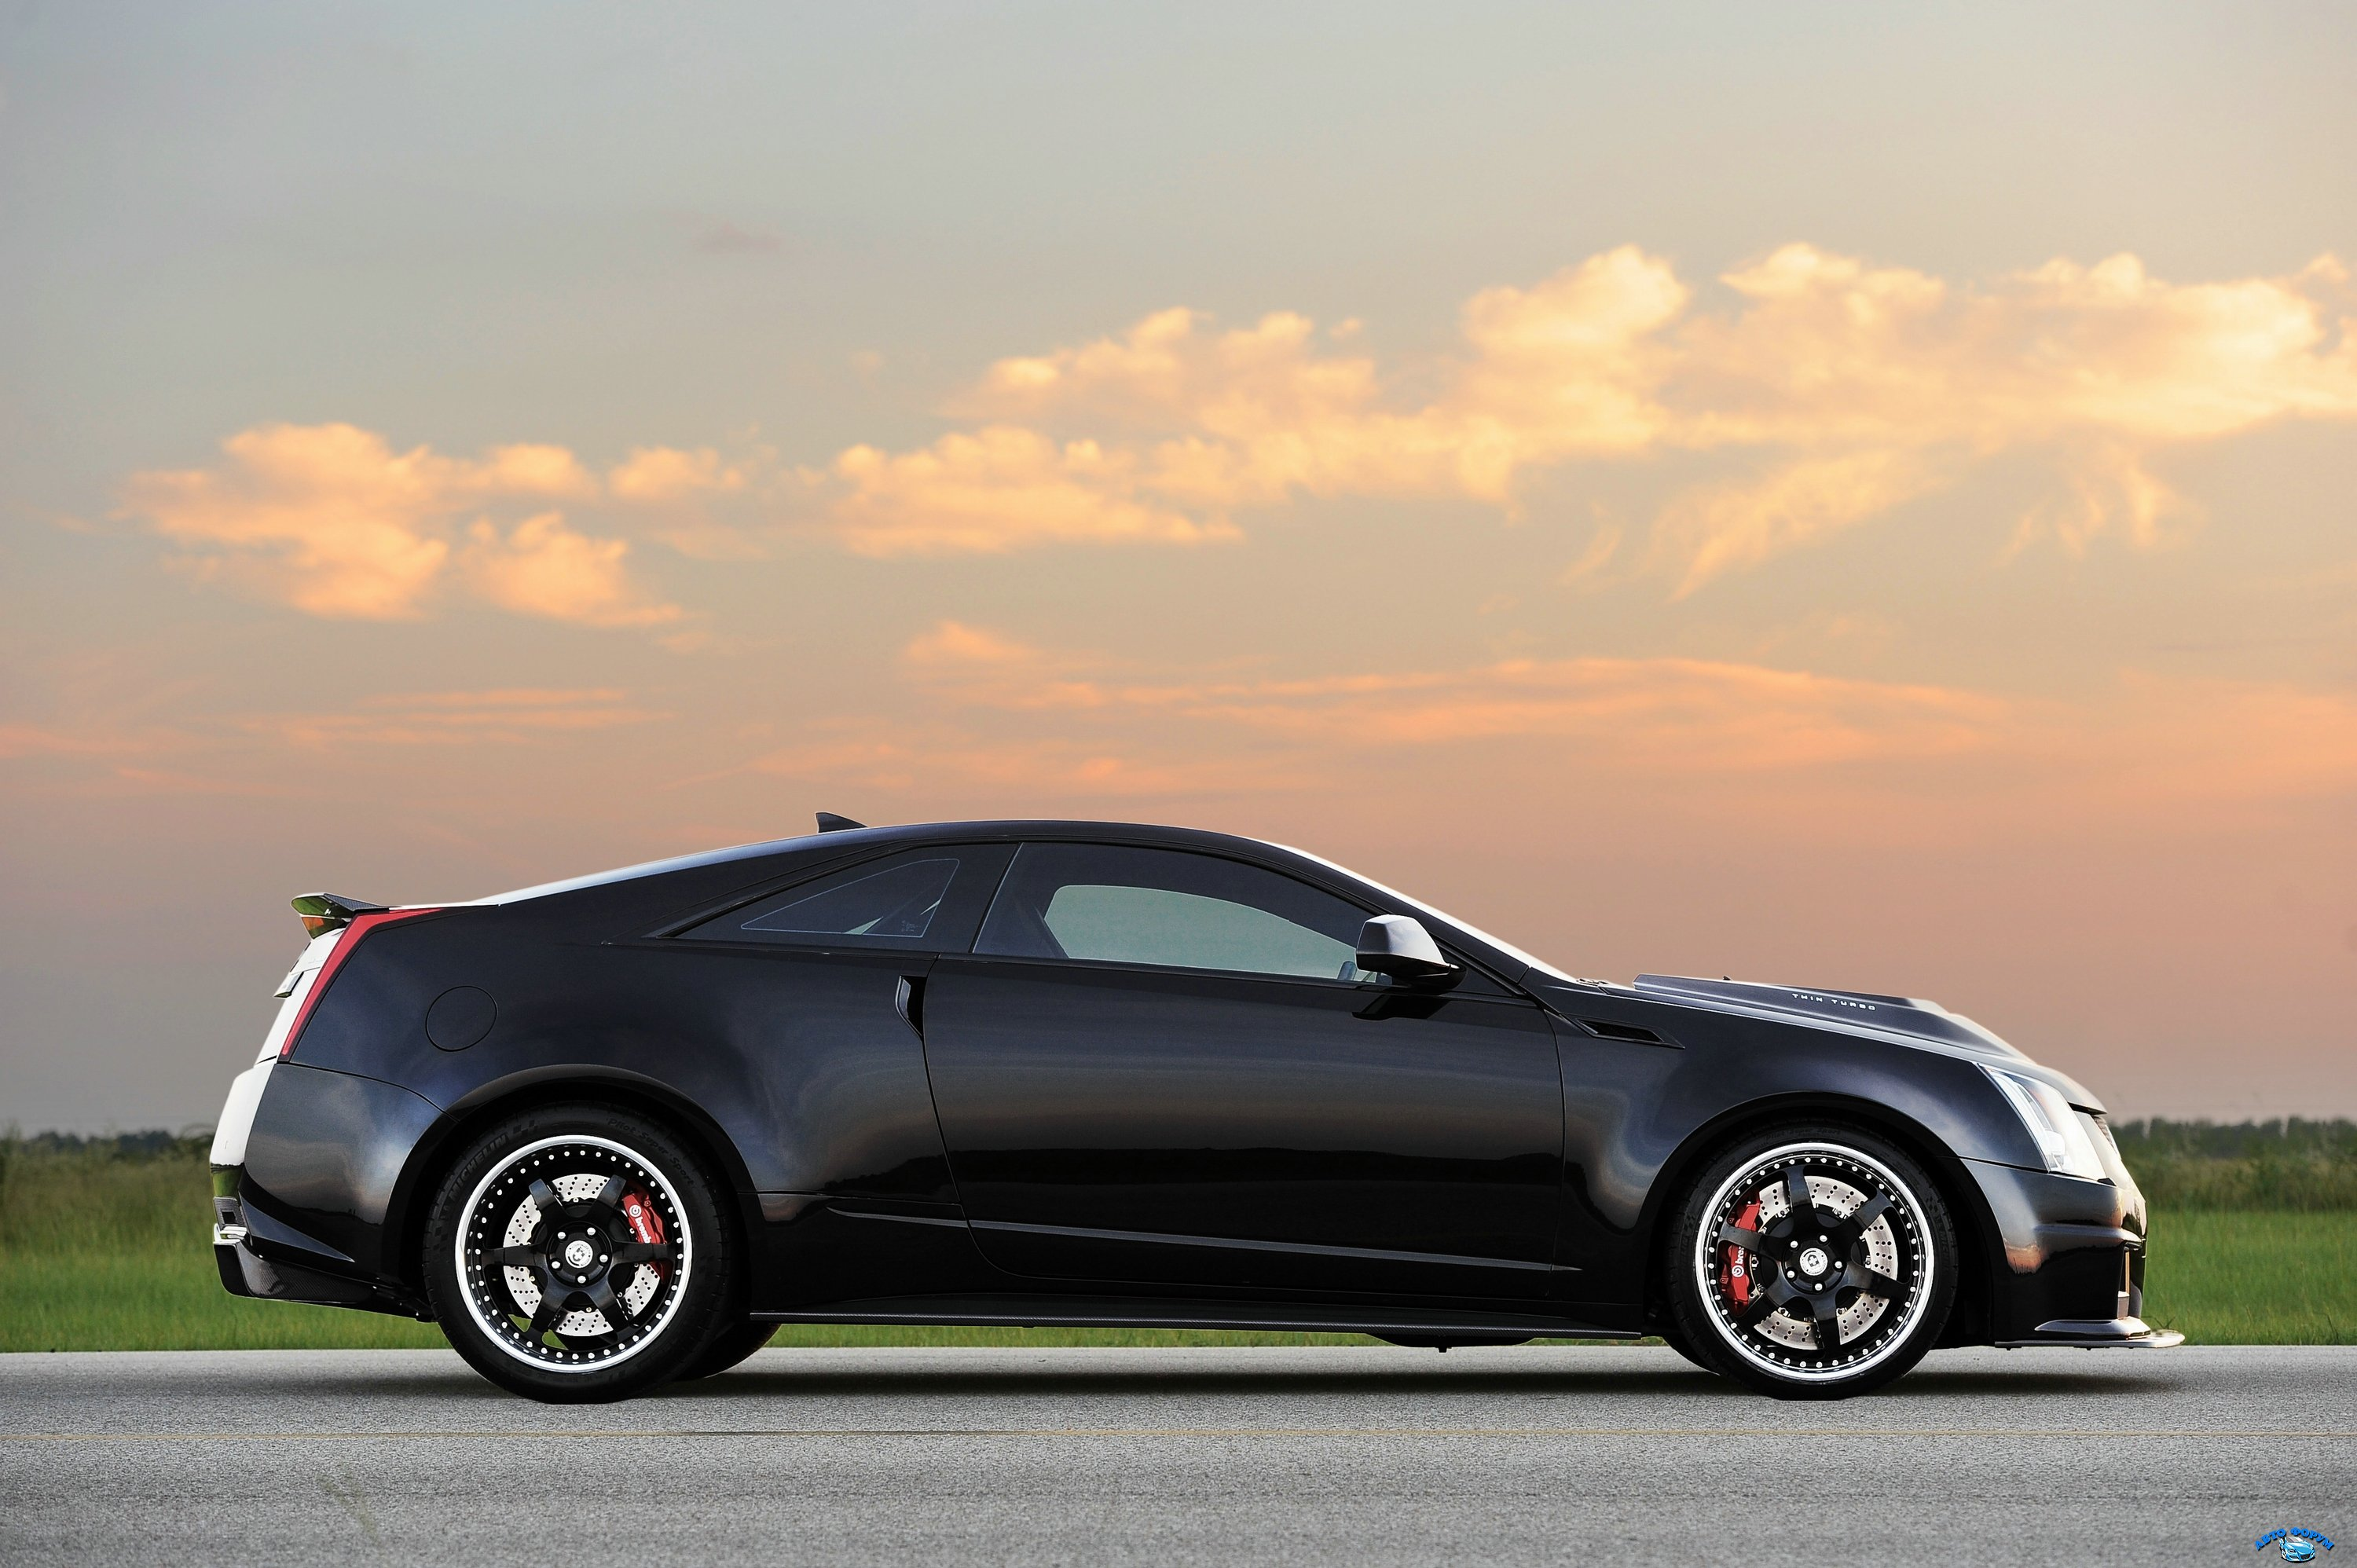 hennessey_cadillac_vr1200_twin_turbo_coupe_10.jpg